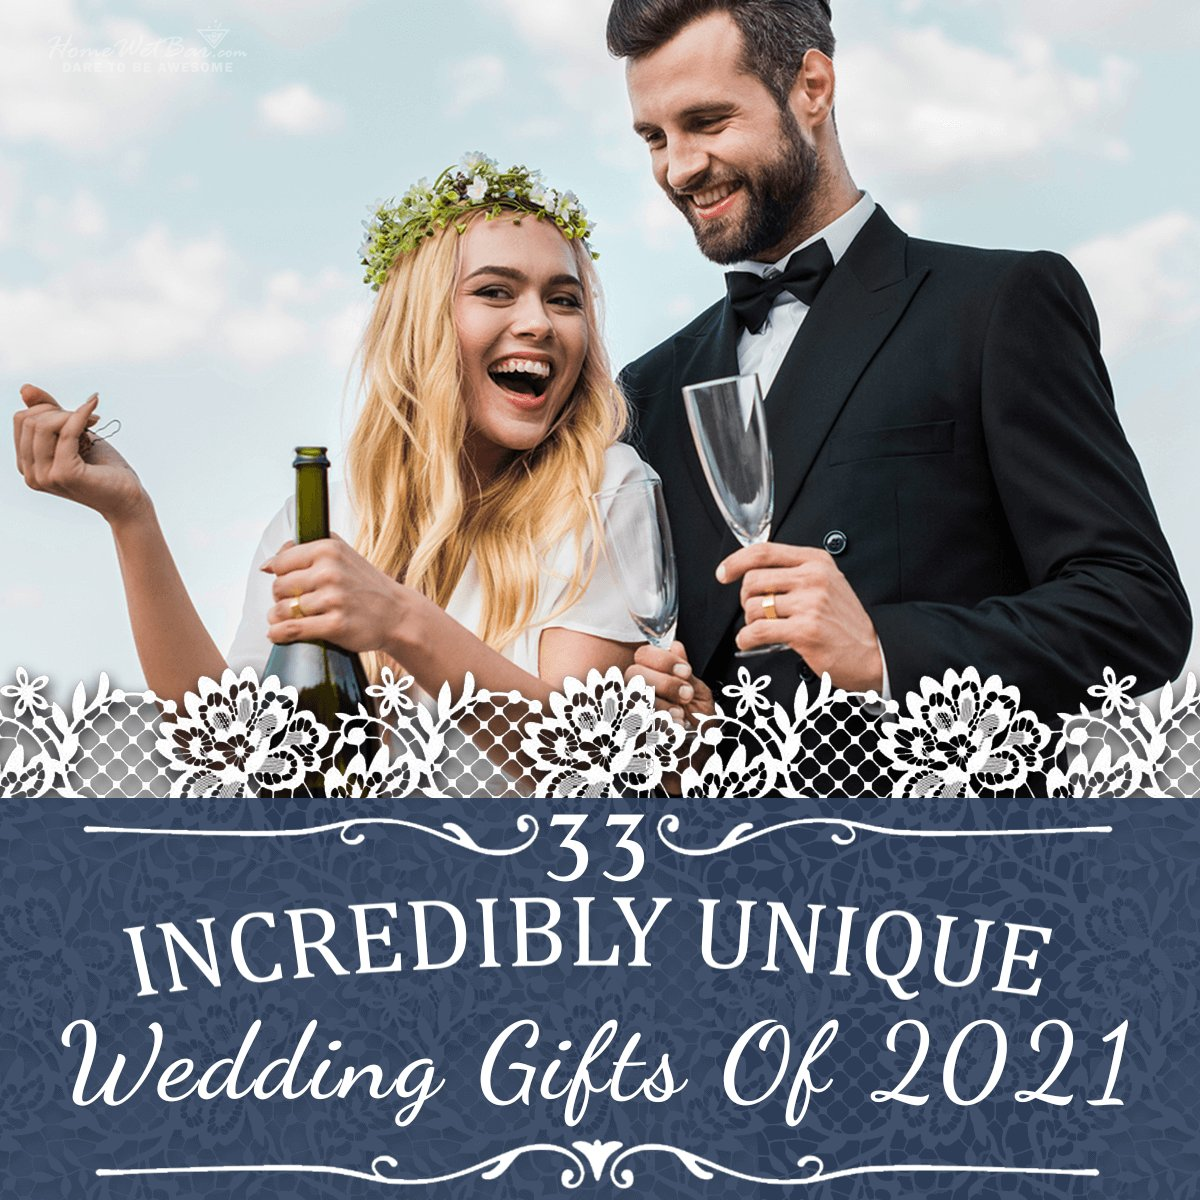 33 Incredibly Unique Wedding Gifts of 2021